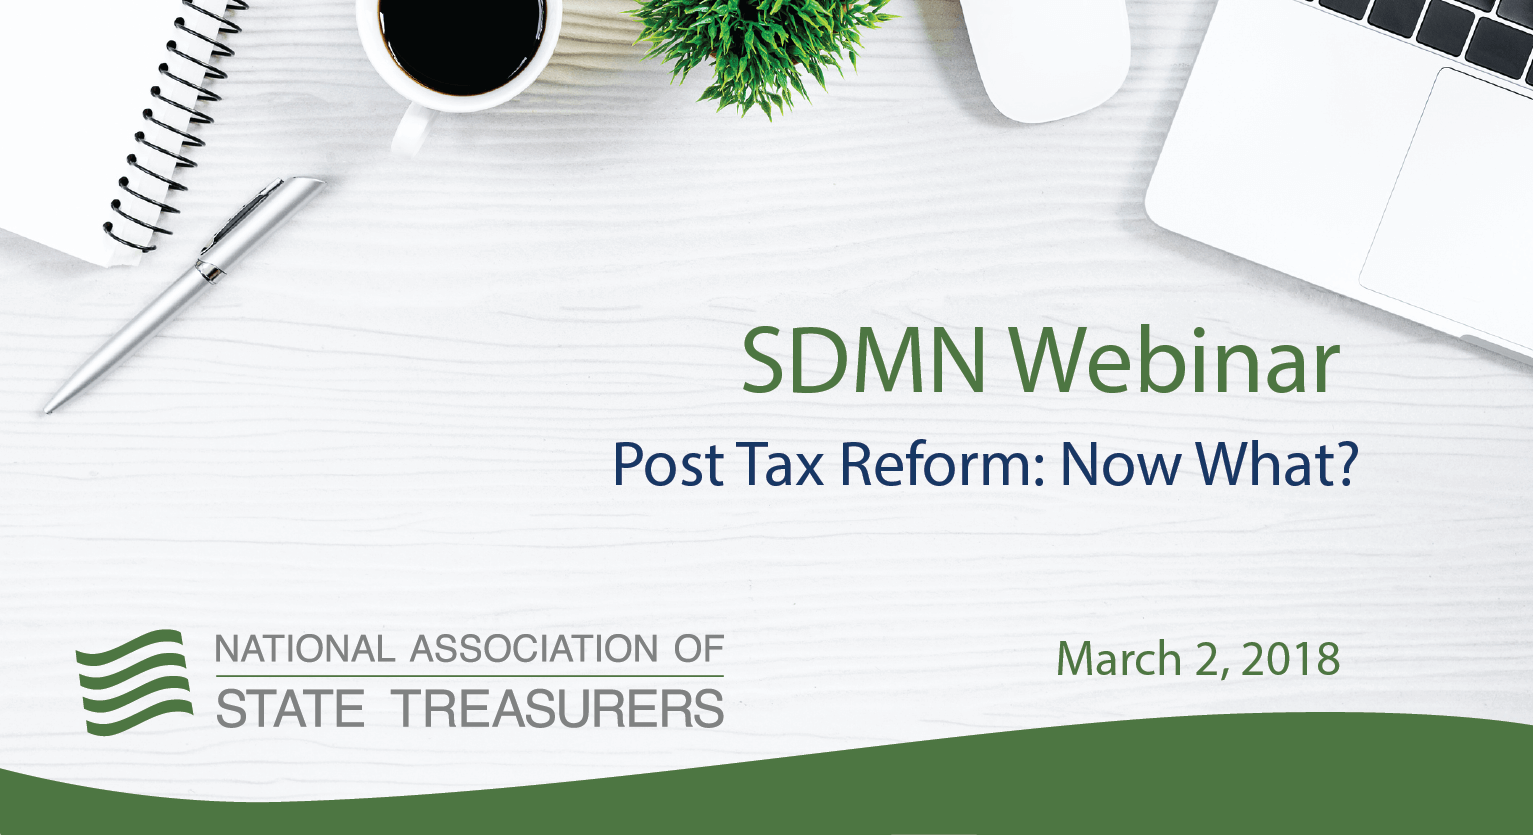 Post Tax Reform: Now What?